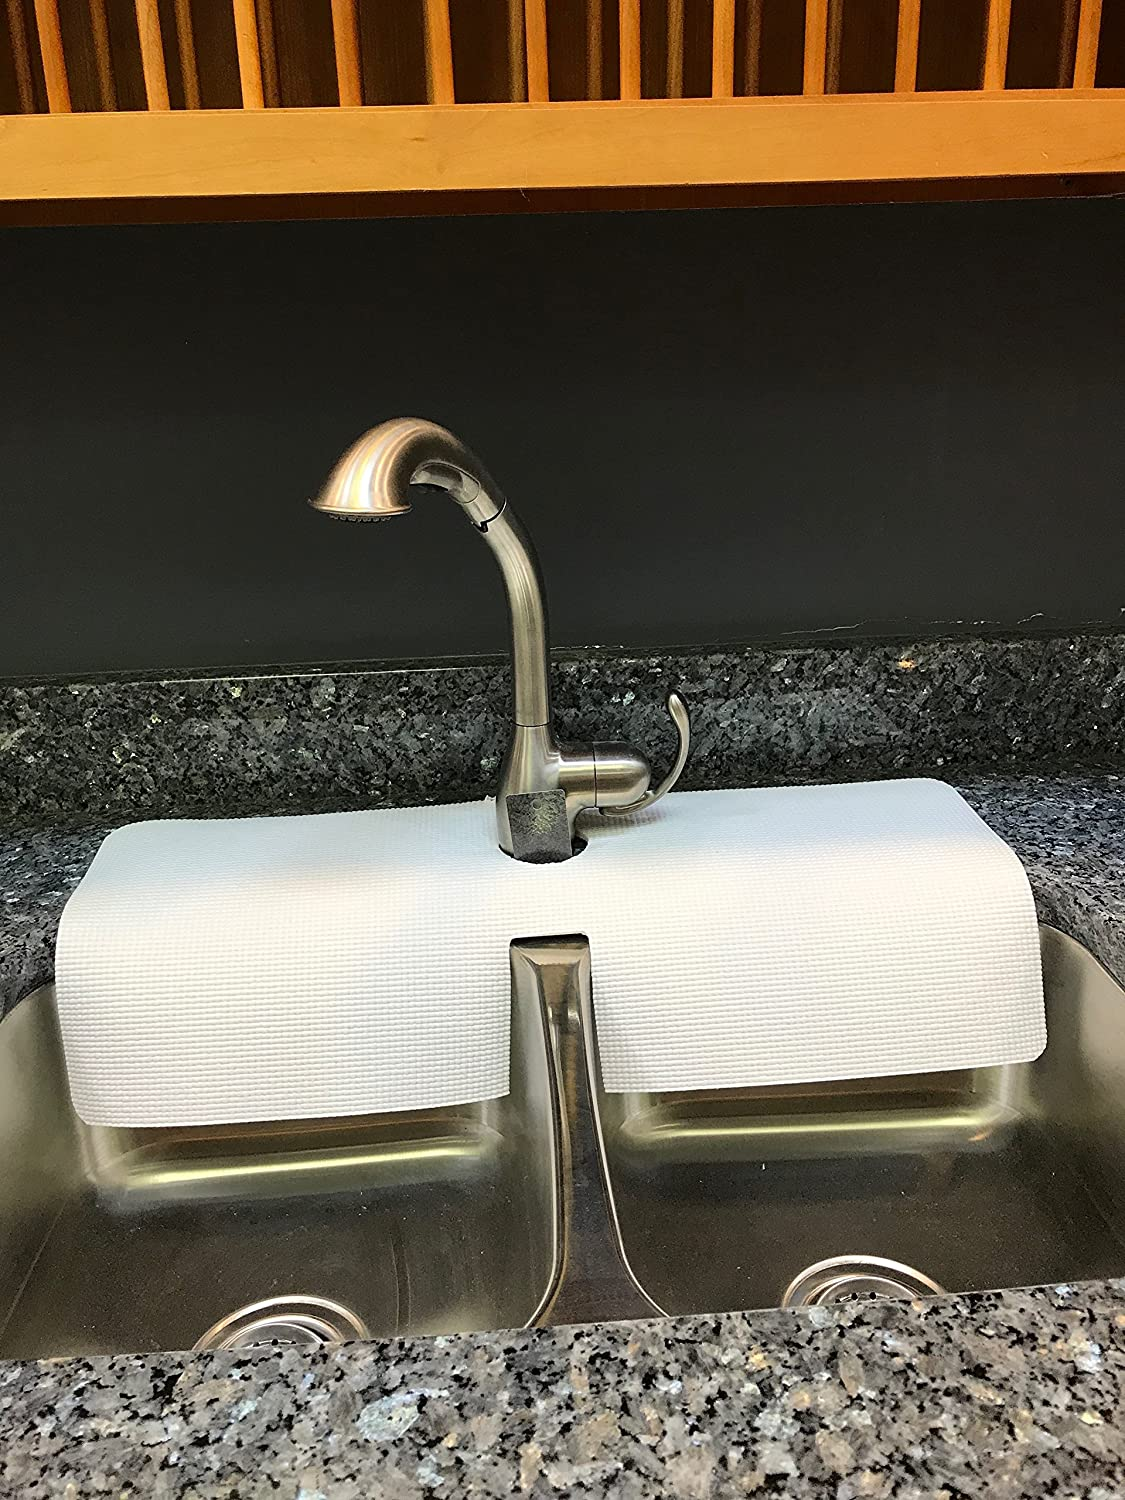 - Kitchen Sink Faucet Splash Guard/protects Area Around Faucet From